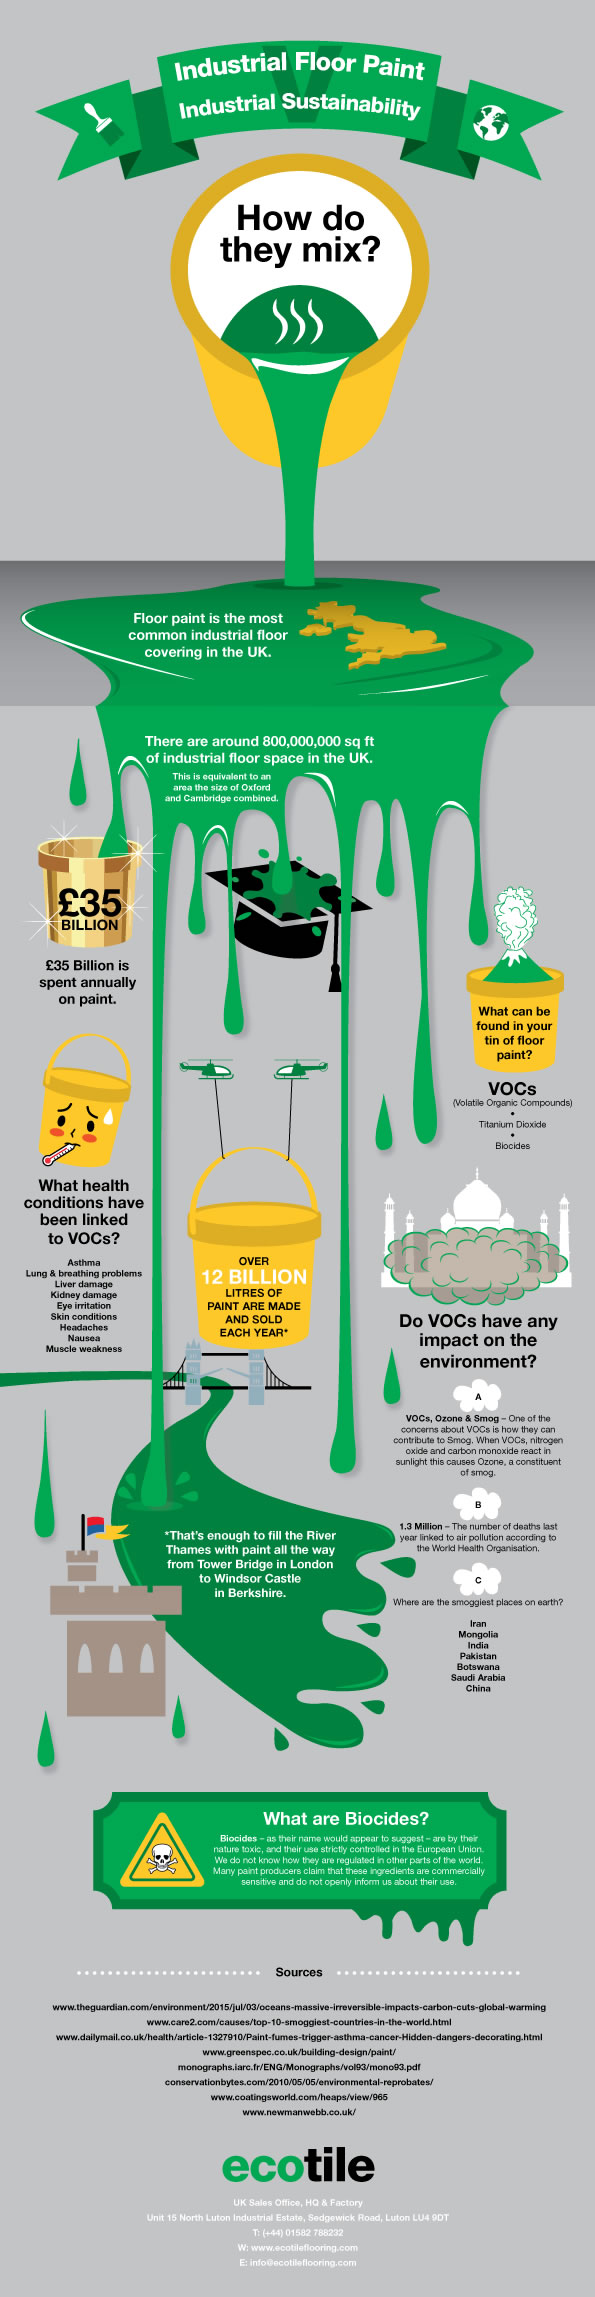 How sustainable is floor paint?